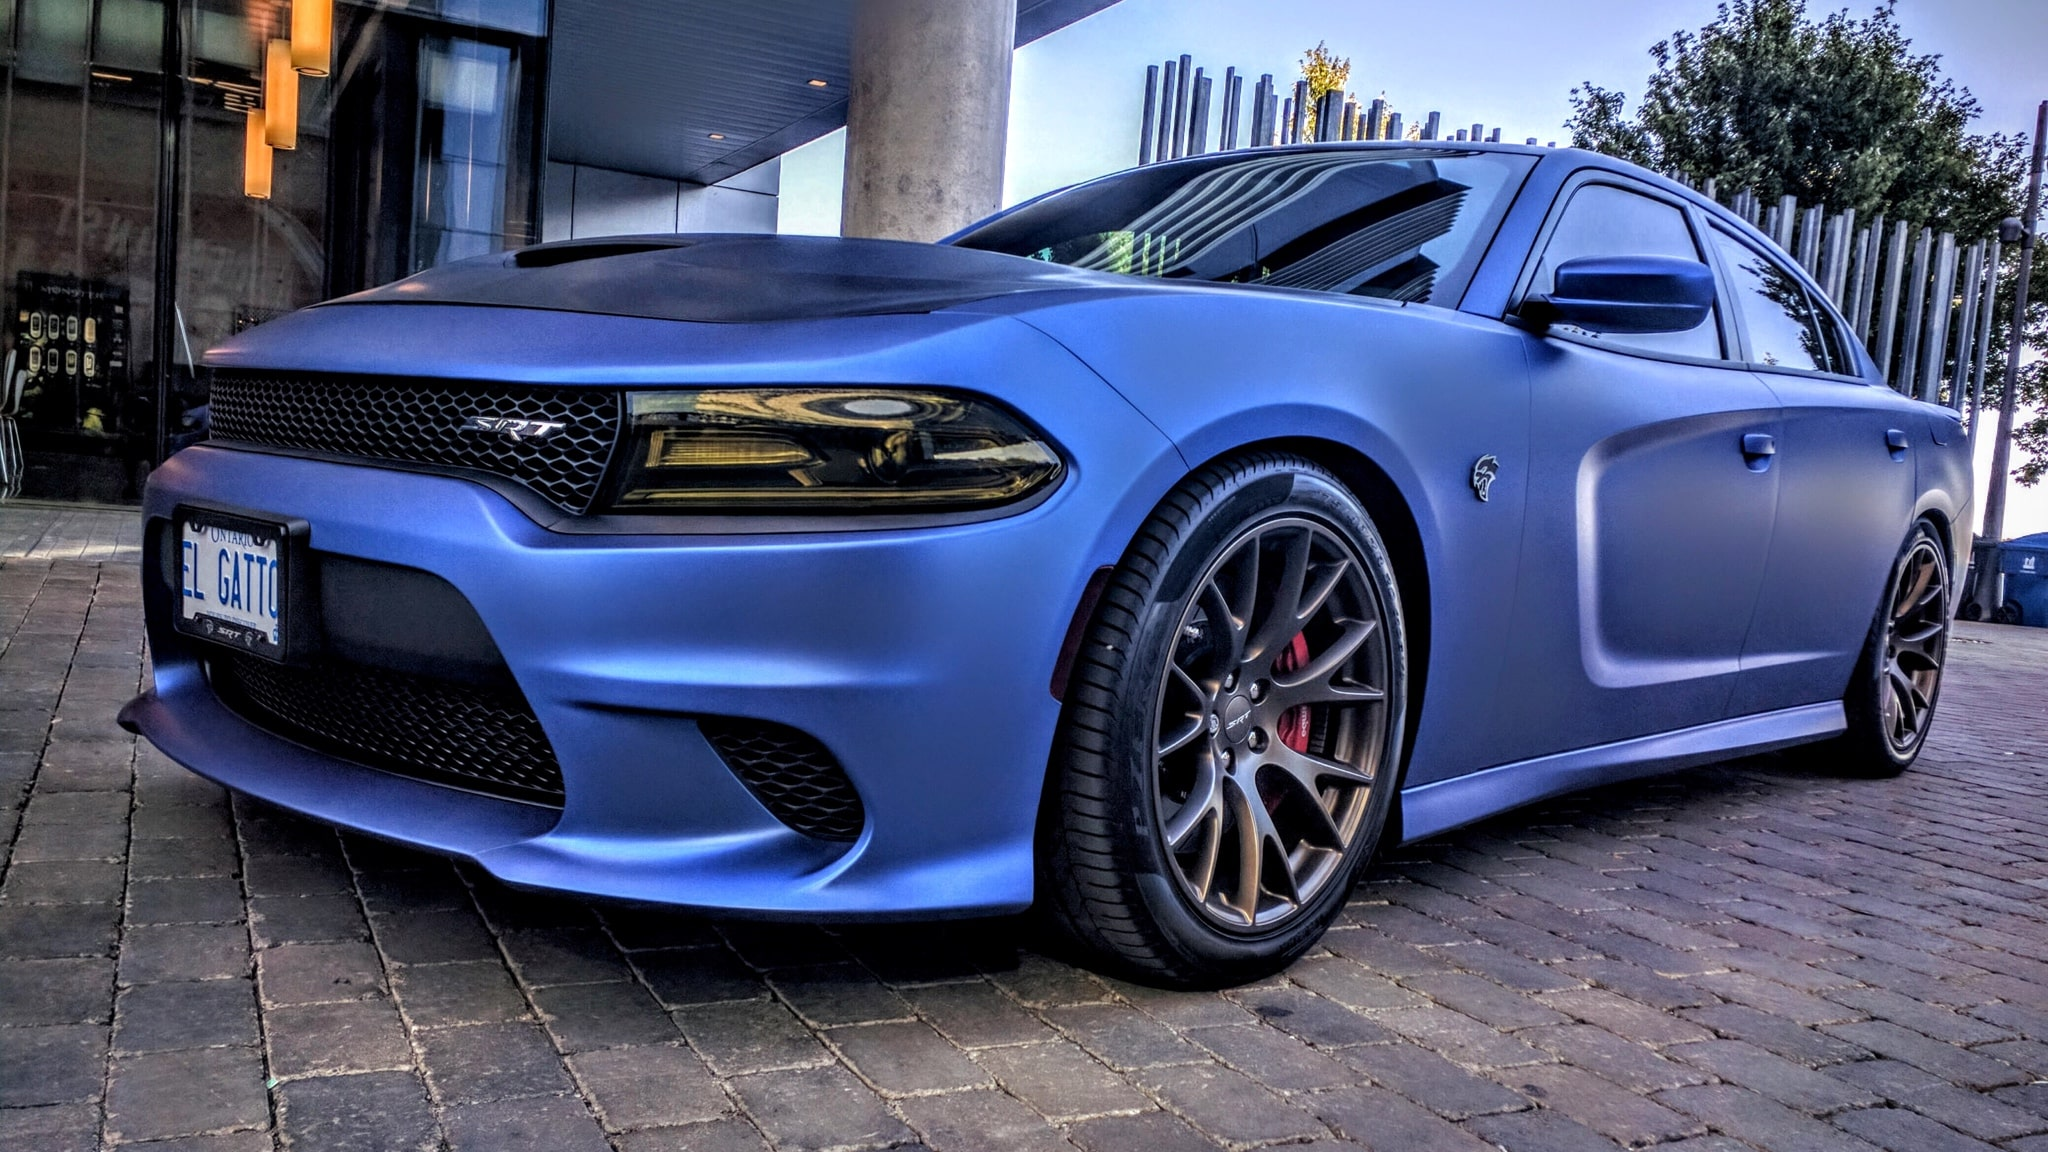 Dodge Charger Hellcat Avery Matt metallic brilliant blue